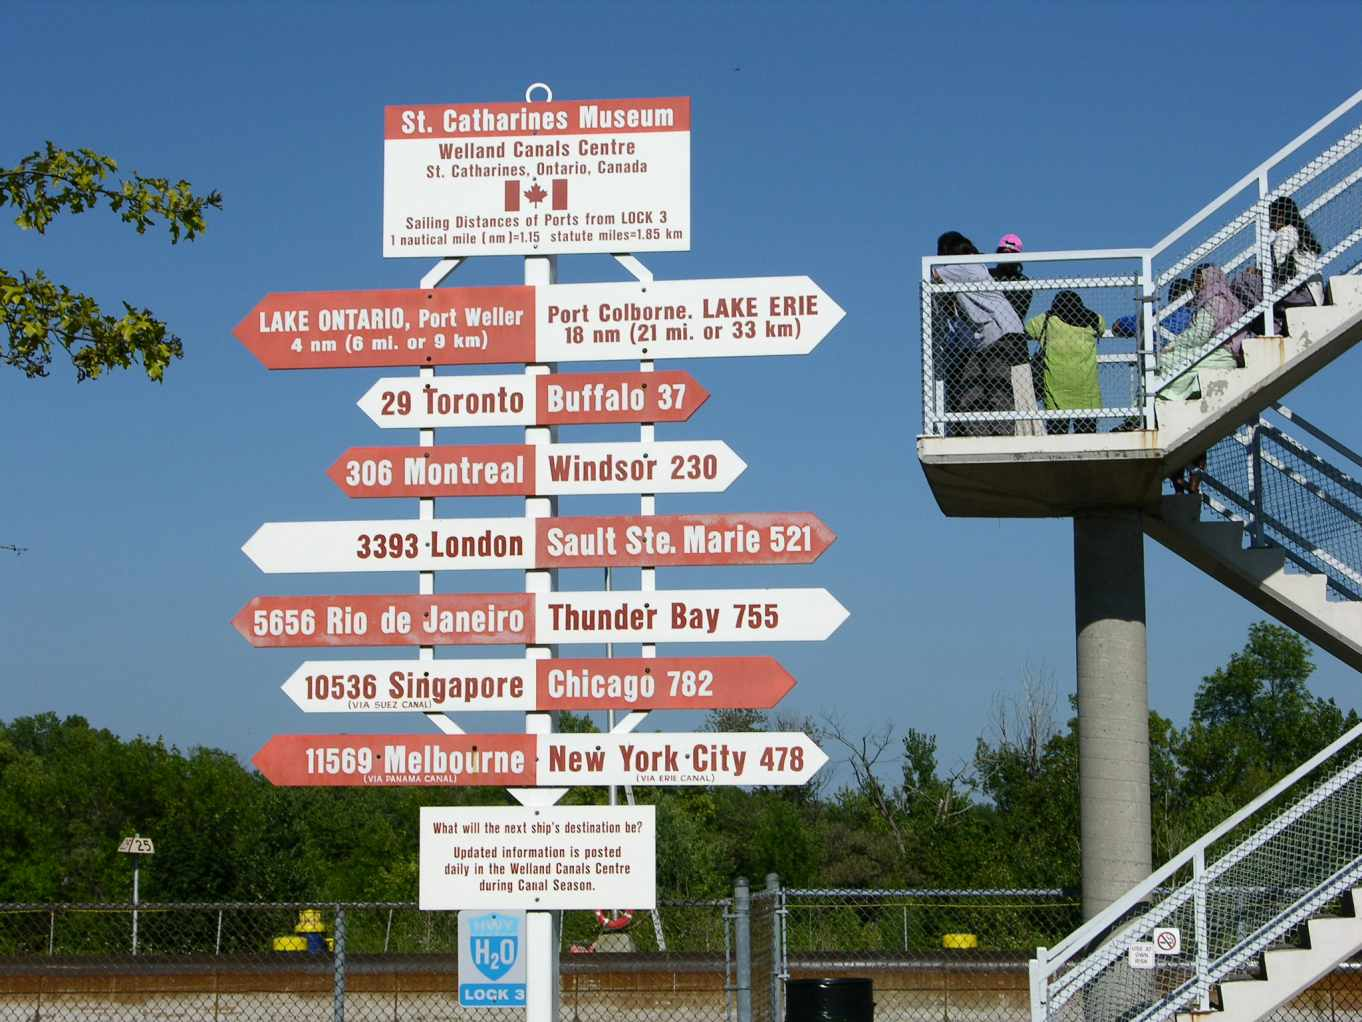 Lock 3 signage, photo by Mike Keenan